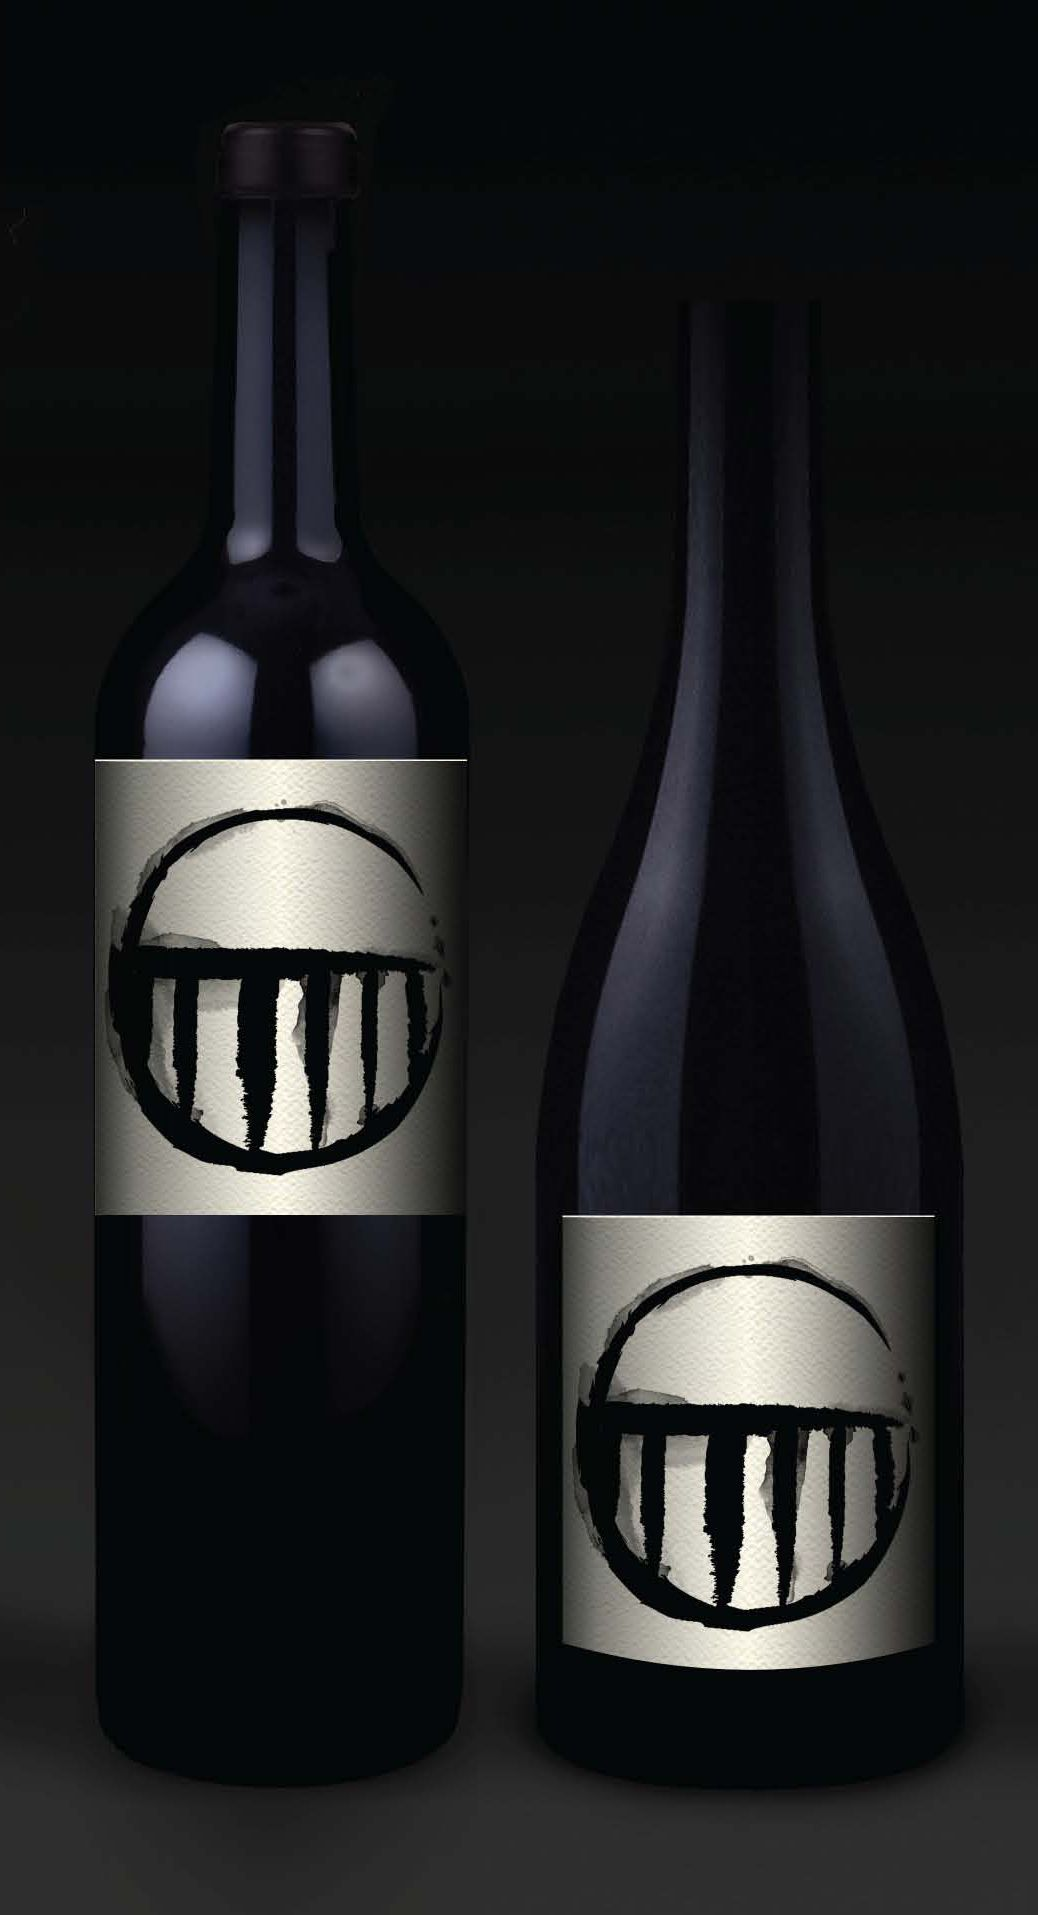 House of waters is a club wine for waters winery in walla walla the house of waters is a club wine for waters winery in walla walla the mark biocorpaavc Gallery